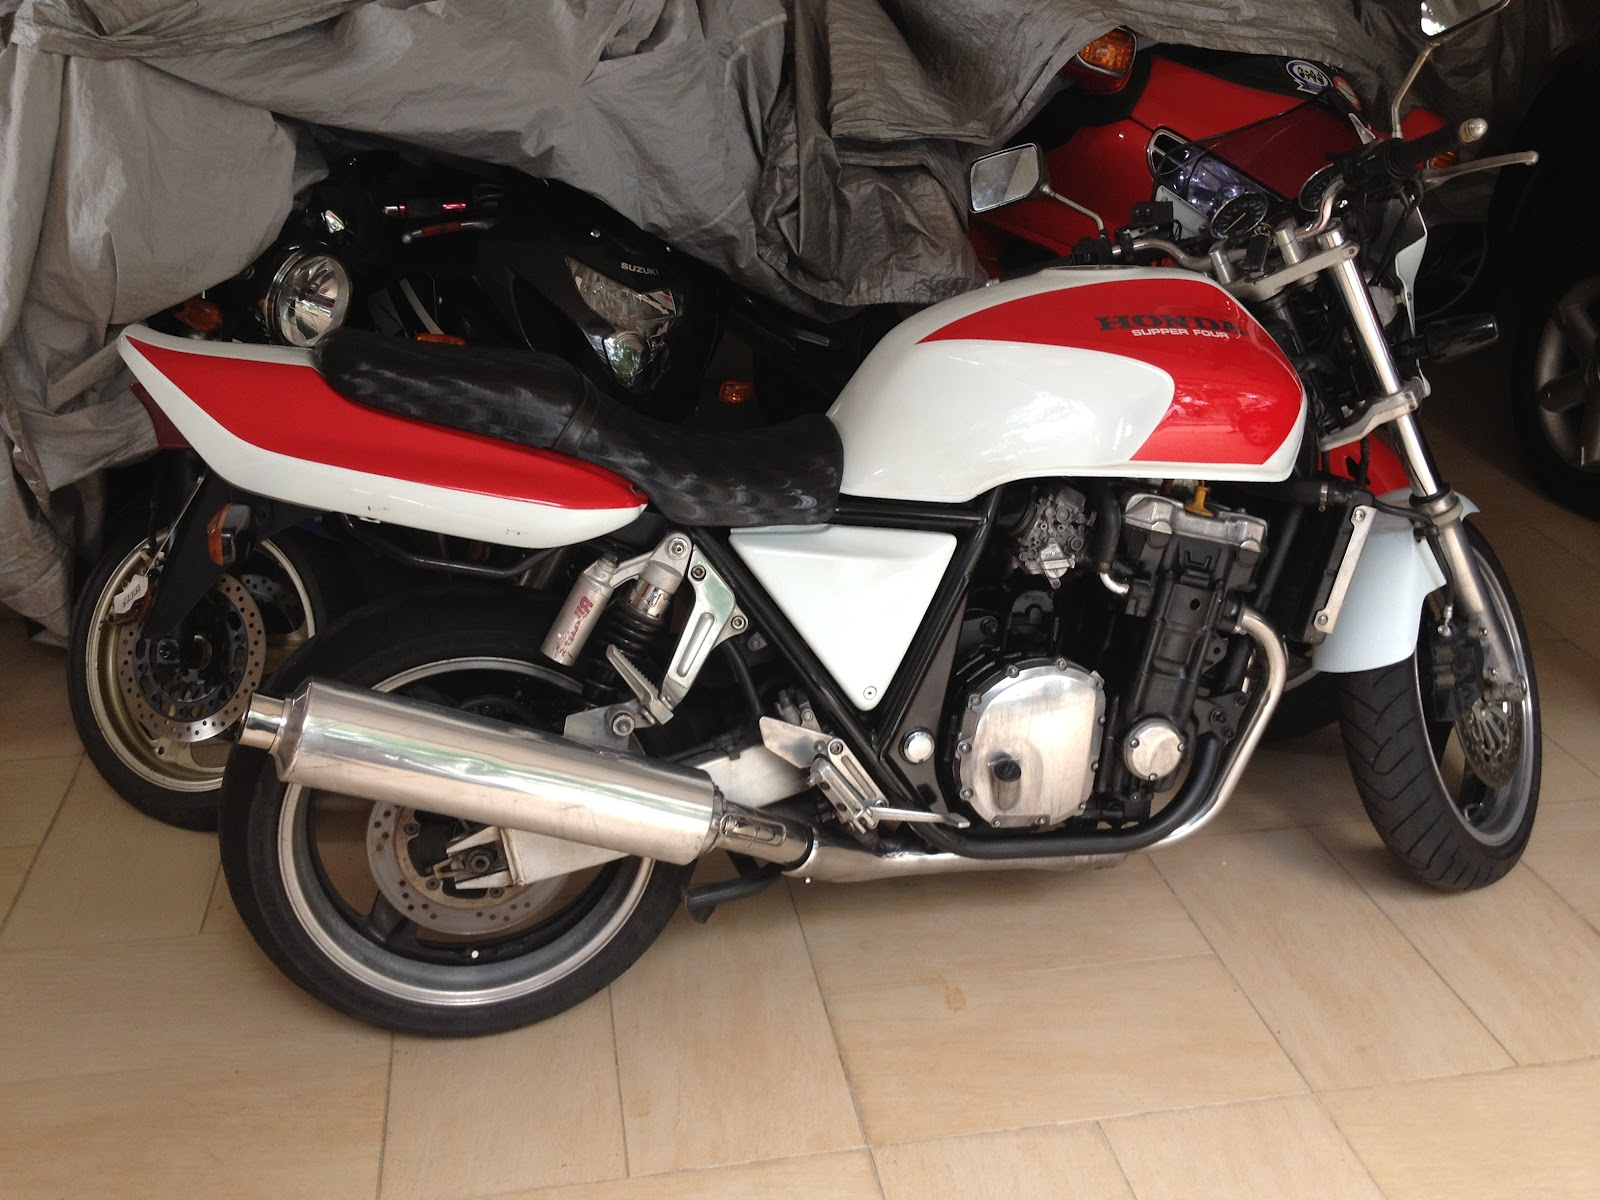 SUPER GREAT SPORTBIKES  FOR SALE HONDA CB 1000 1996 SOLD